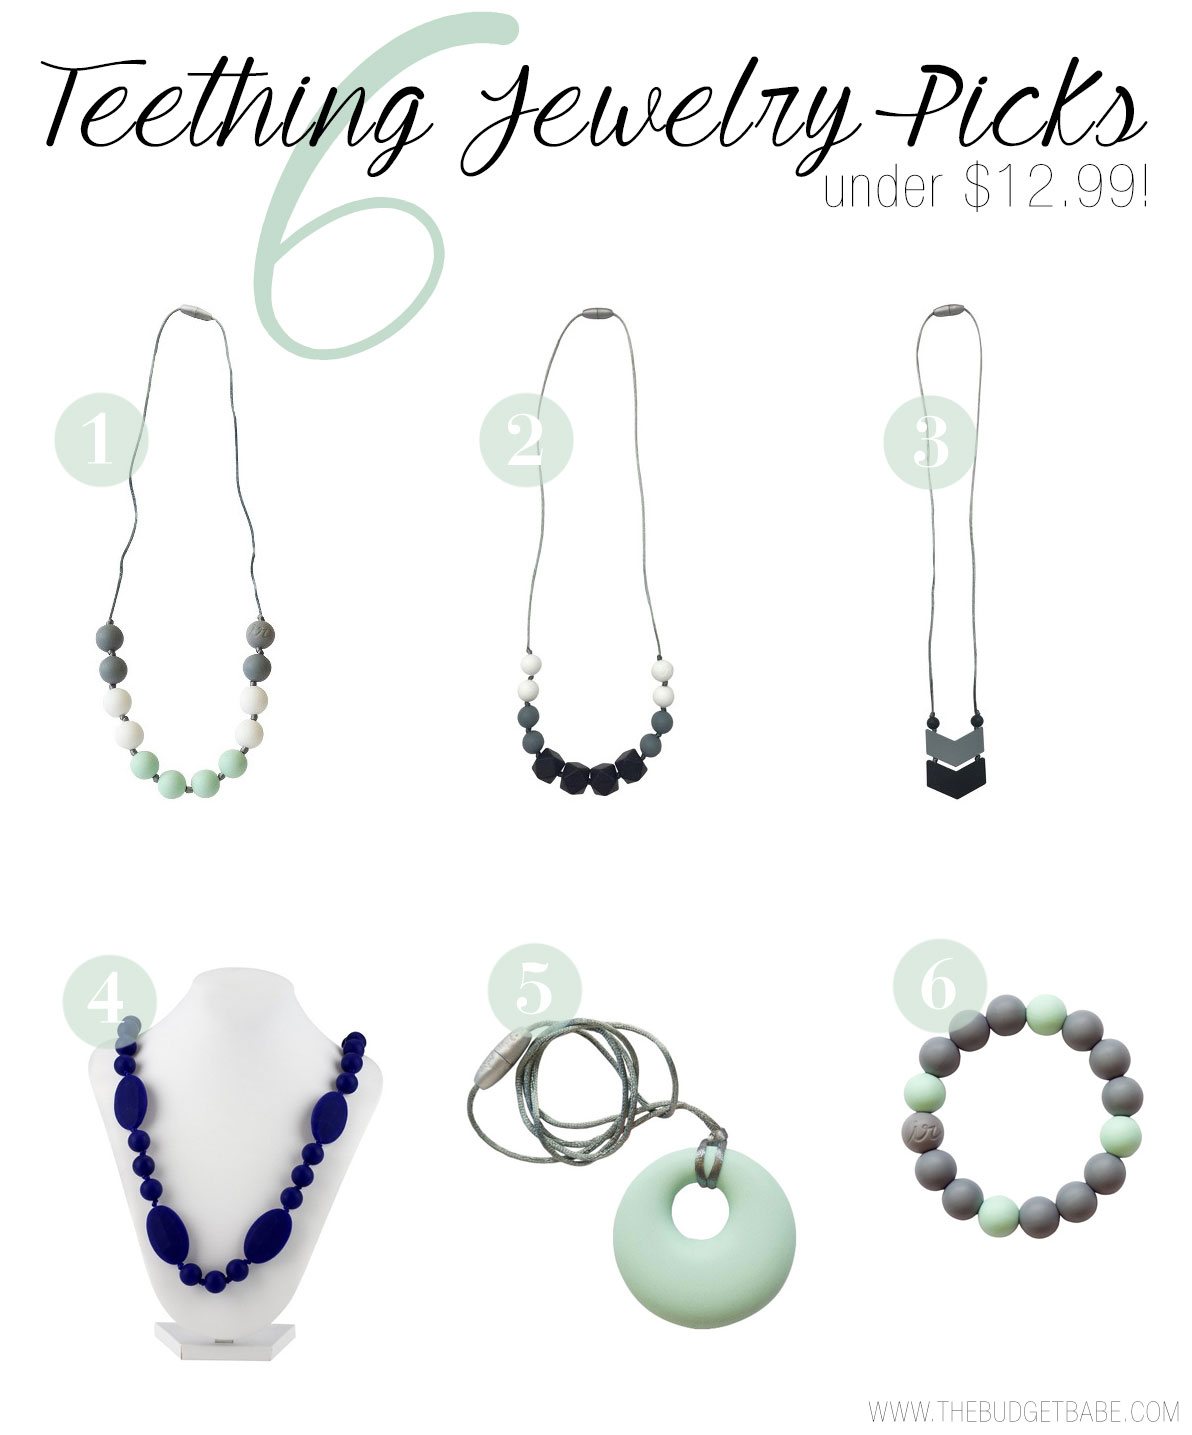 Shop teething jewelry picks under $12.99.